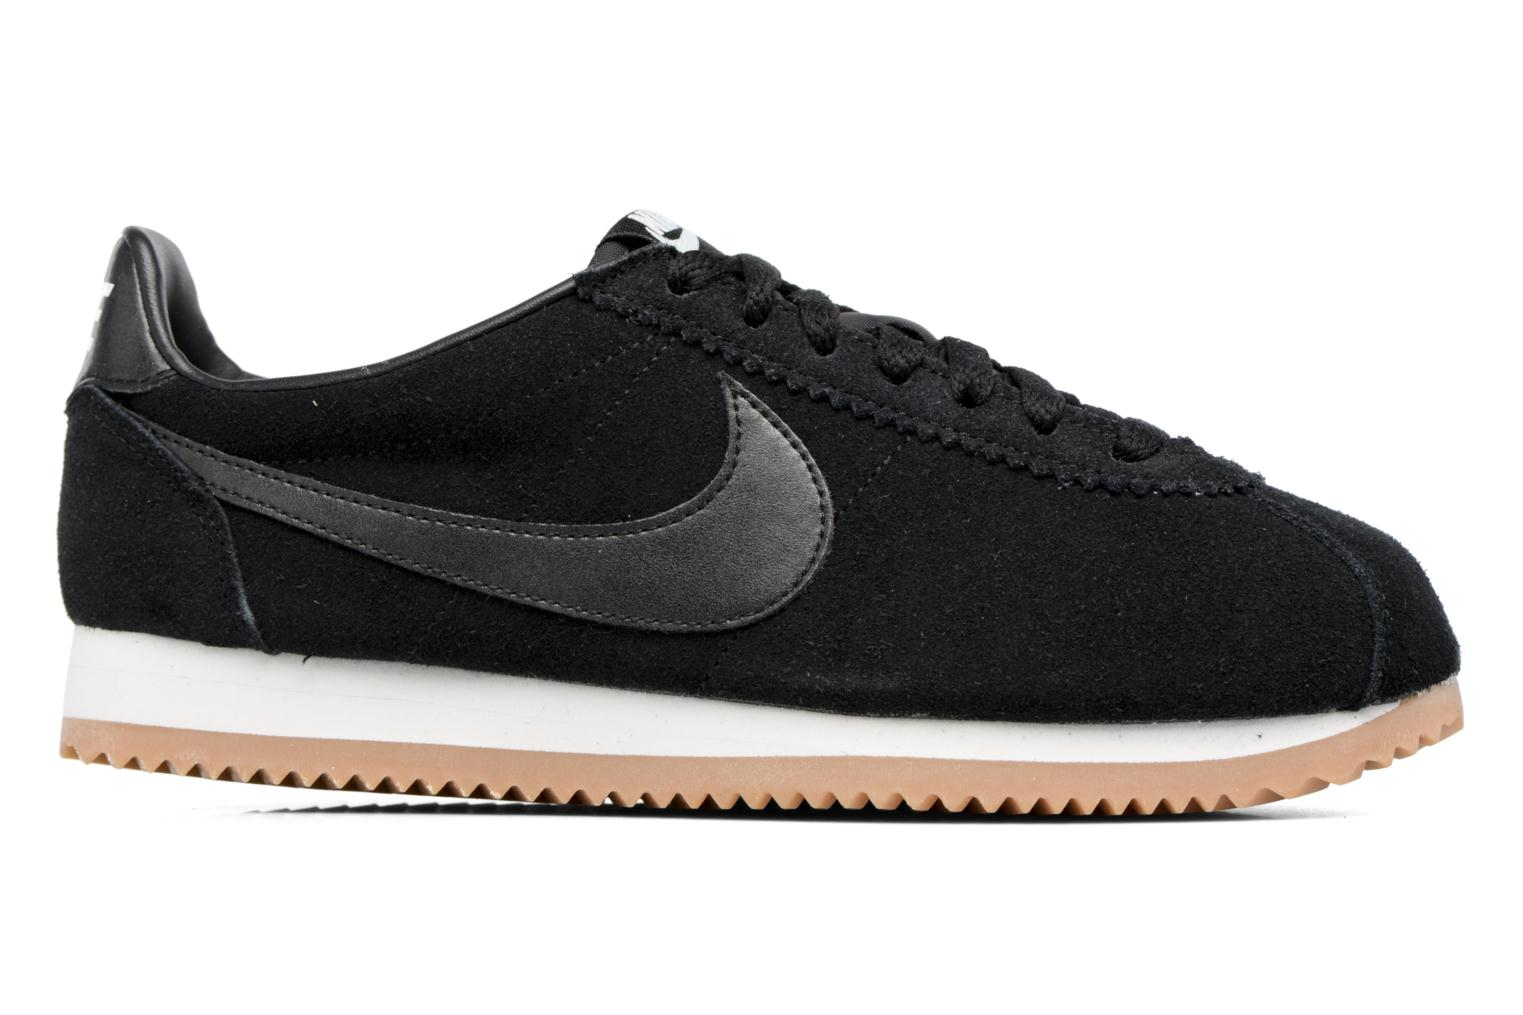 Wmns Classic Cortez Suede Black/Black-Summit White-Gum Med Brown